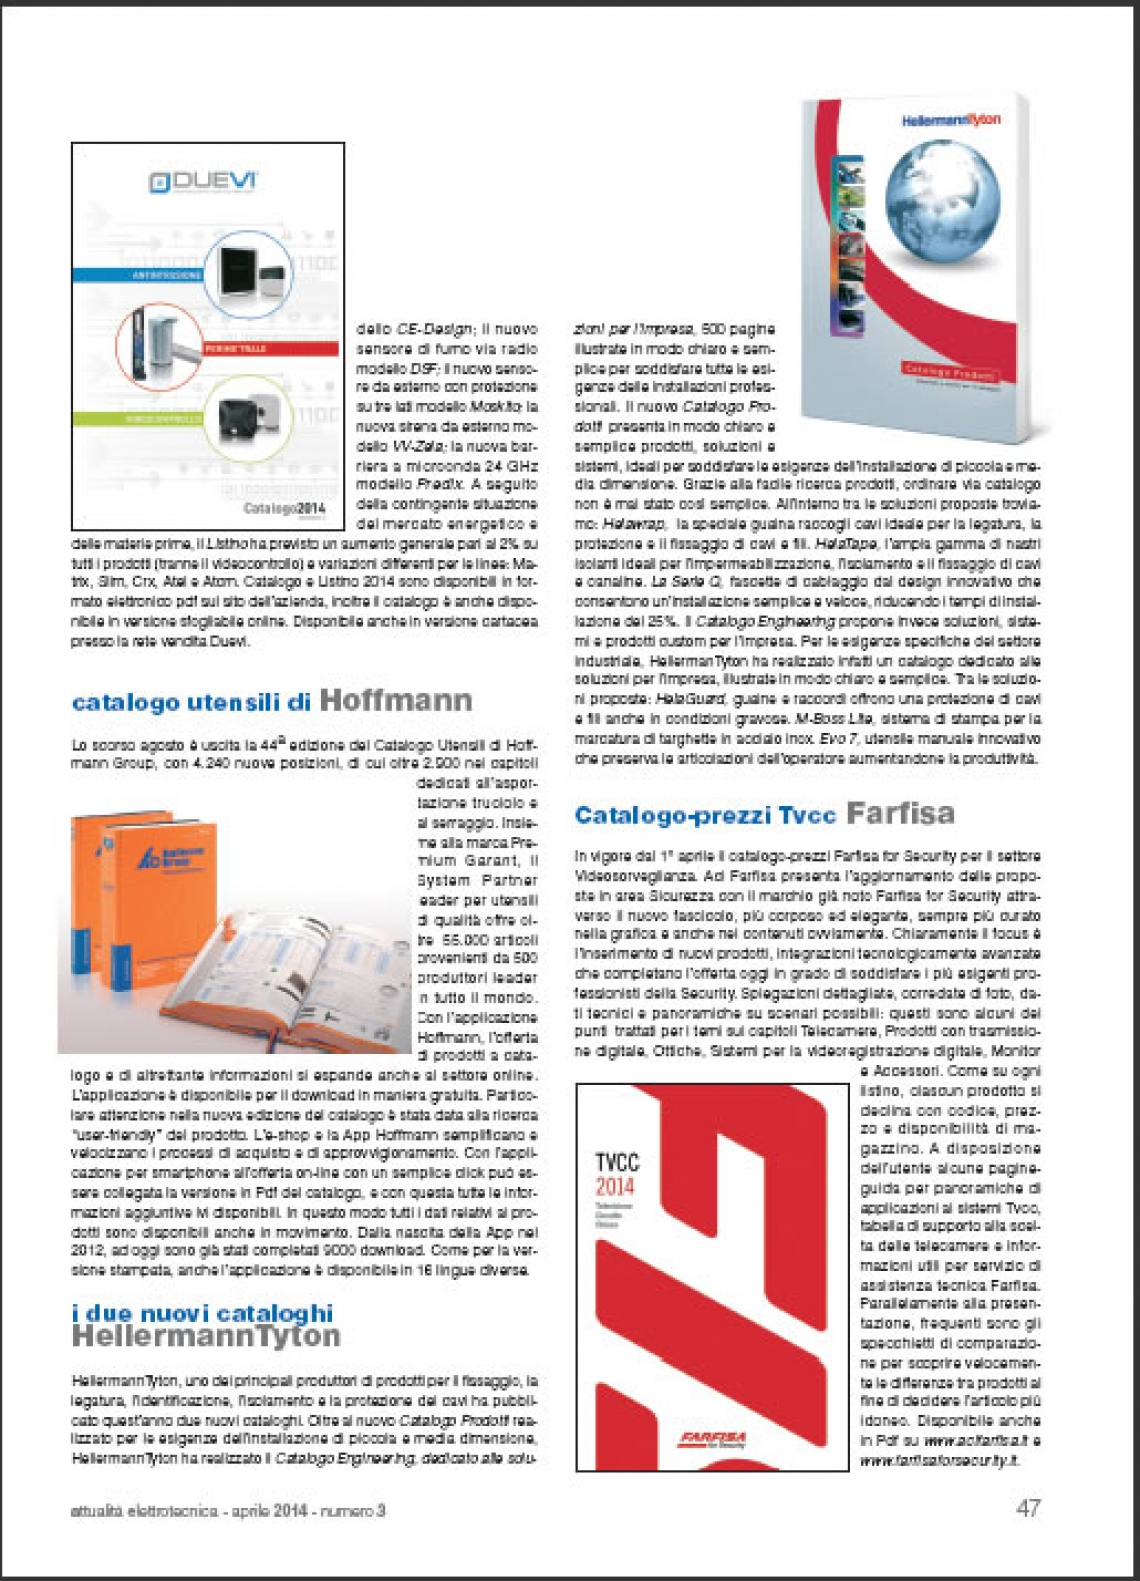 Nuovo catalogo prezzi Farfisa for Security